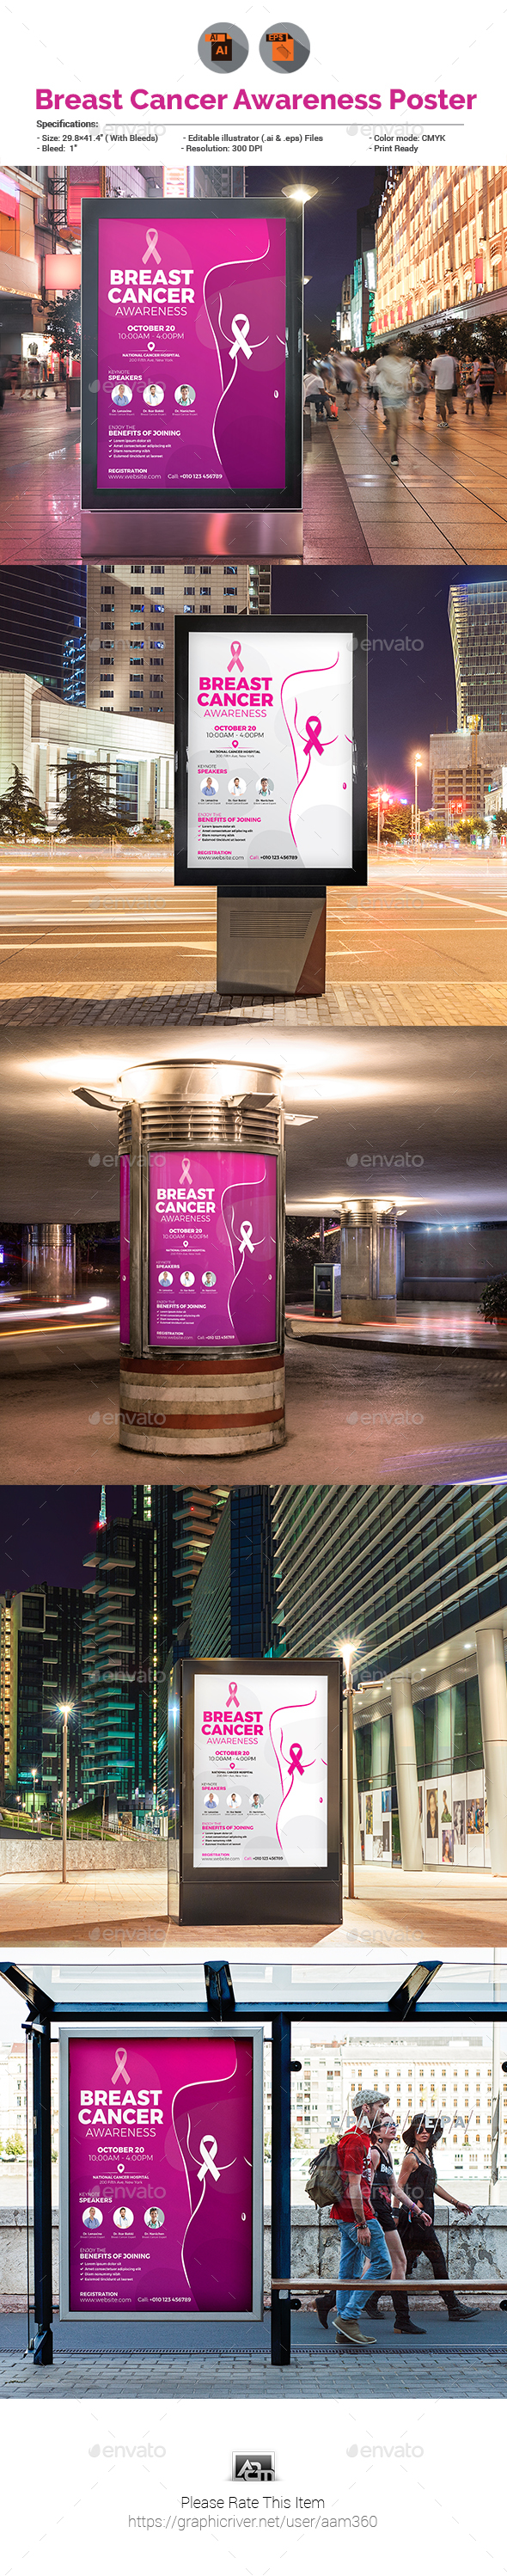 GraphicRiver Breast Cancer Awareness Poster 21070600